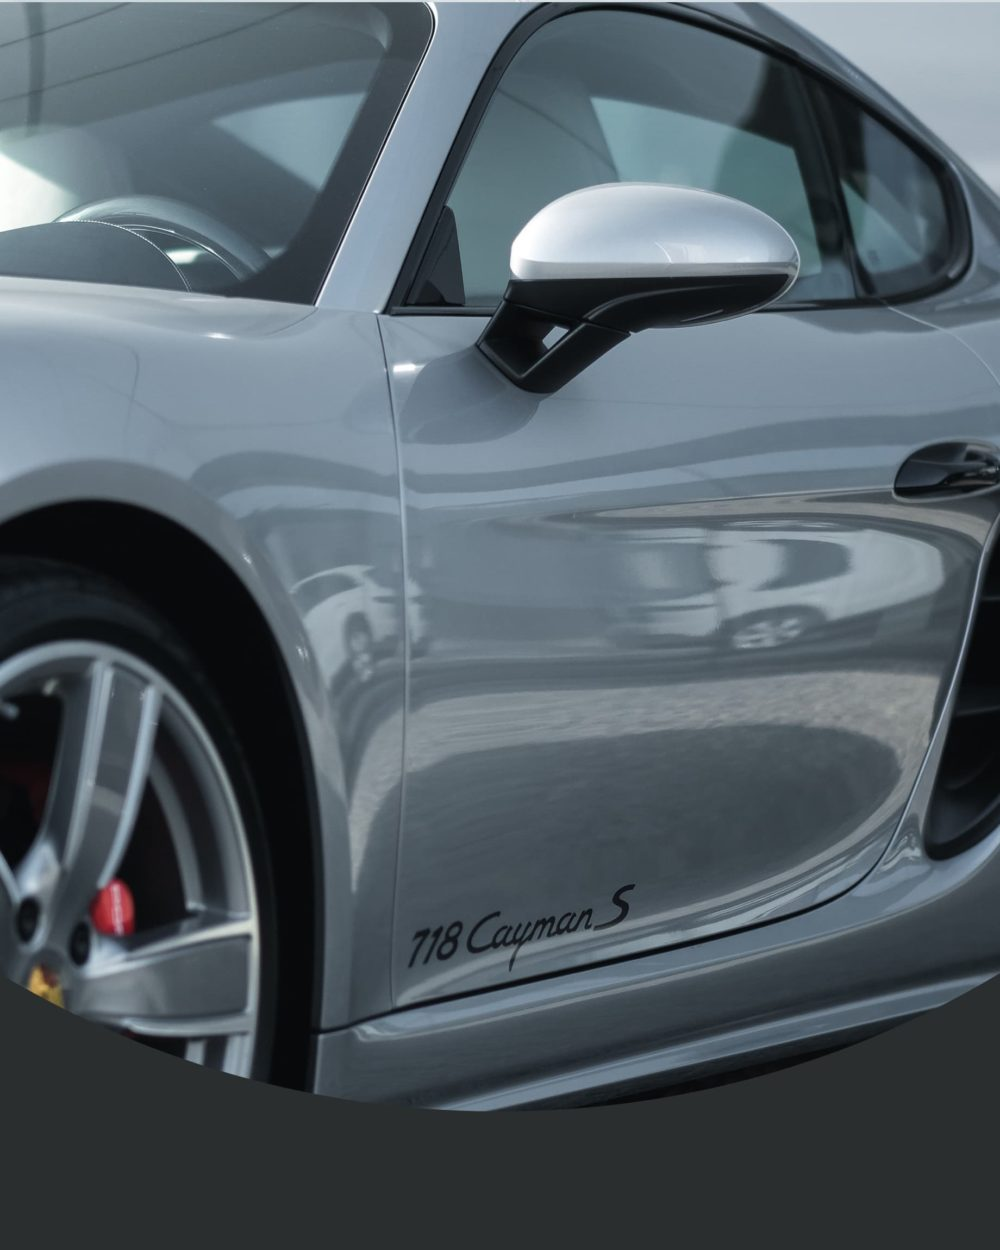 Read our detailing customer testimonials from previous Driven by Detail customers.